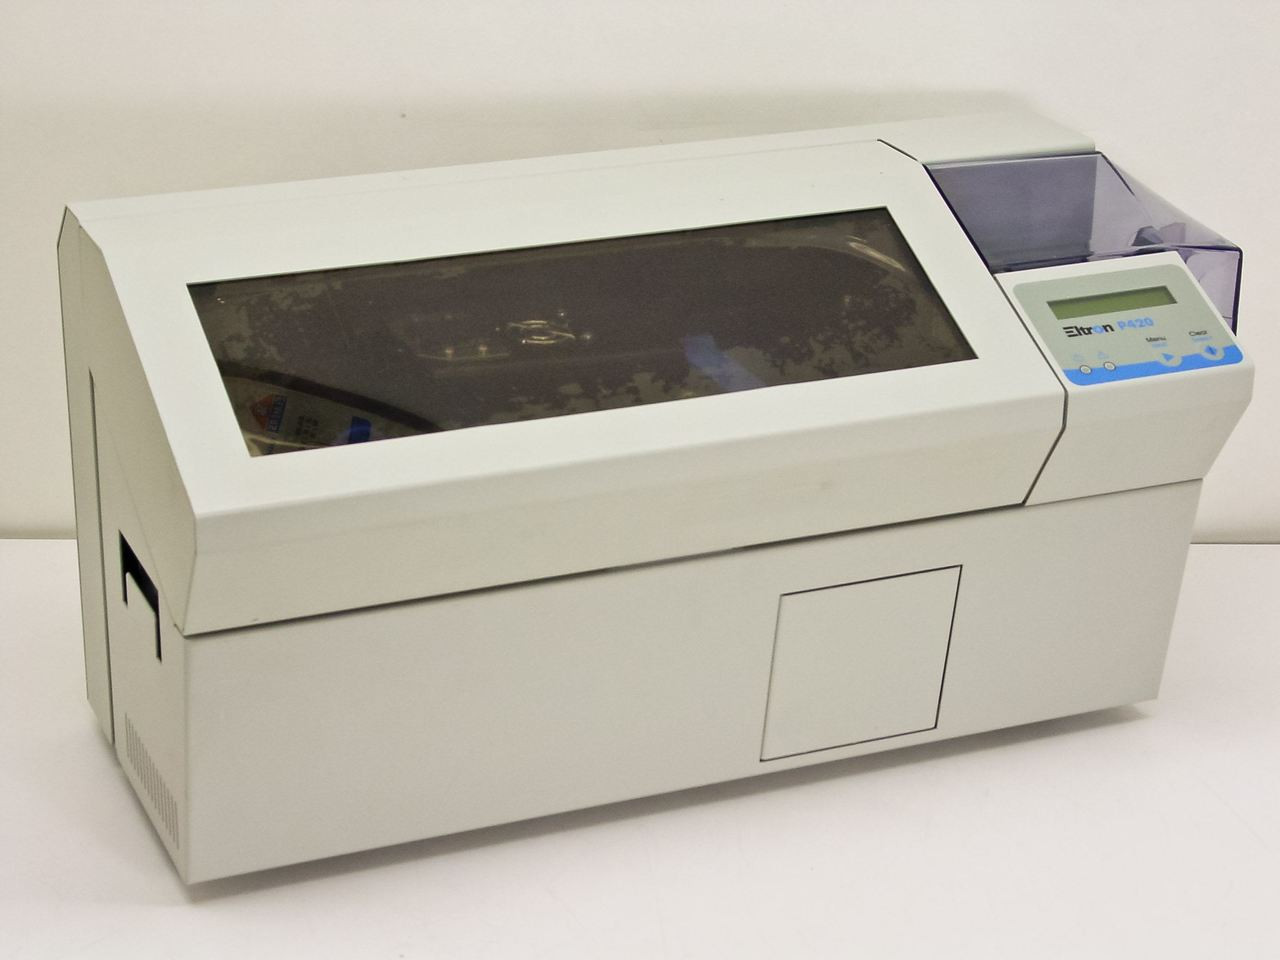 DOWNLOAD DRIVER: ELTRON P420C CARD PRINTER